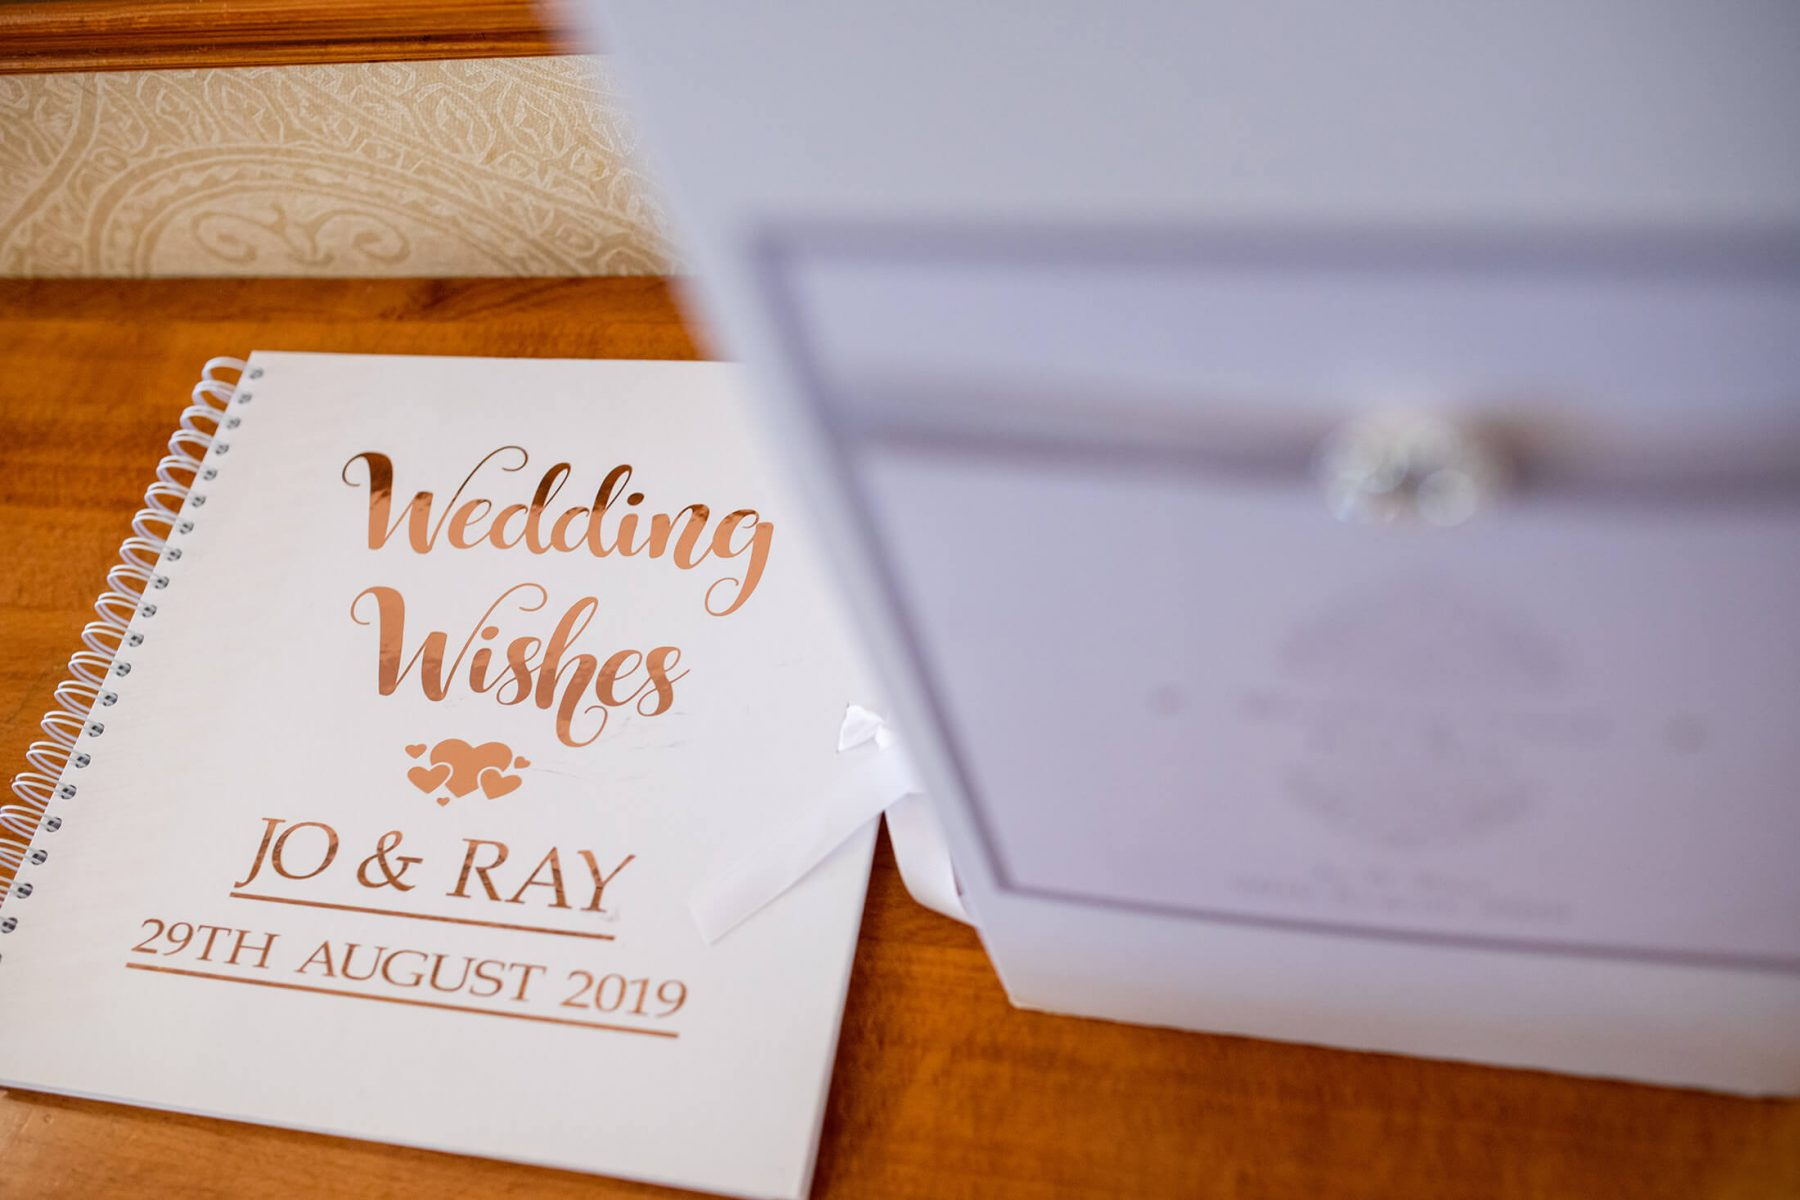 Wedding stationary at the wedding venue.